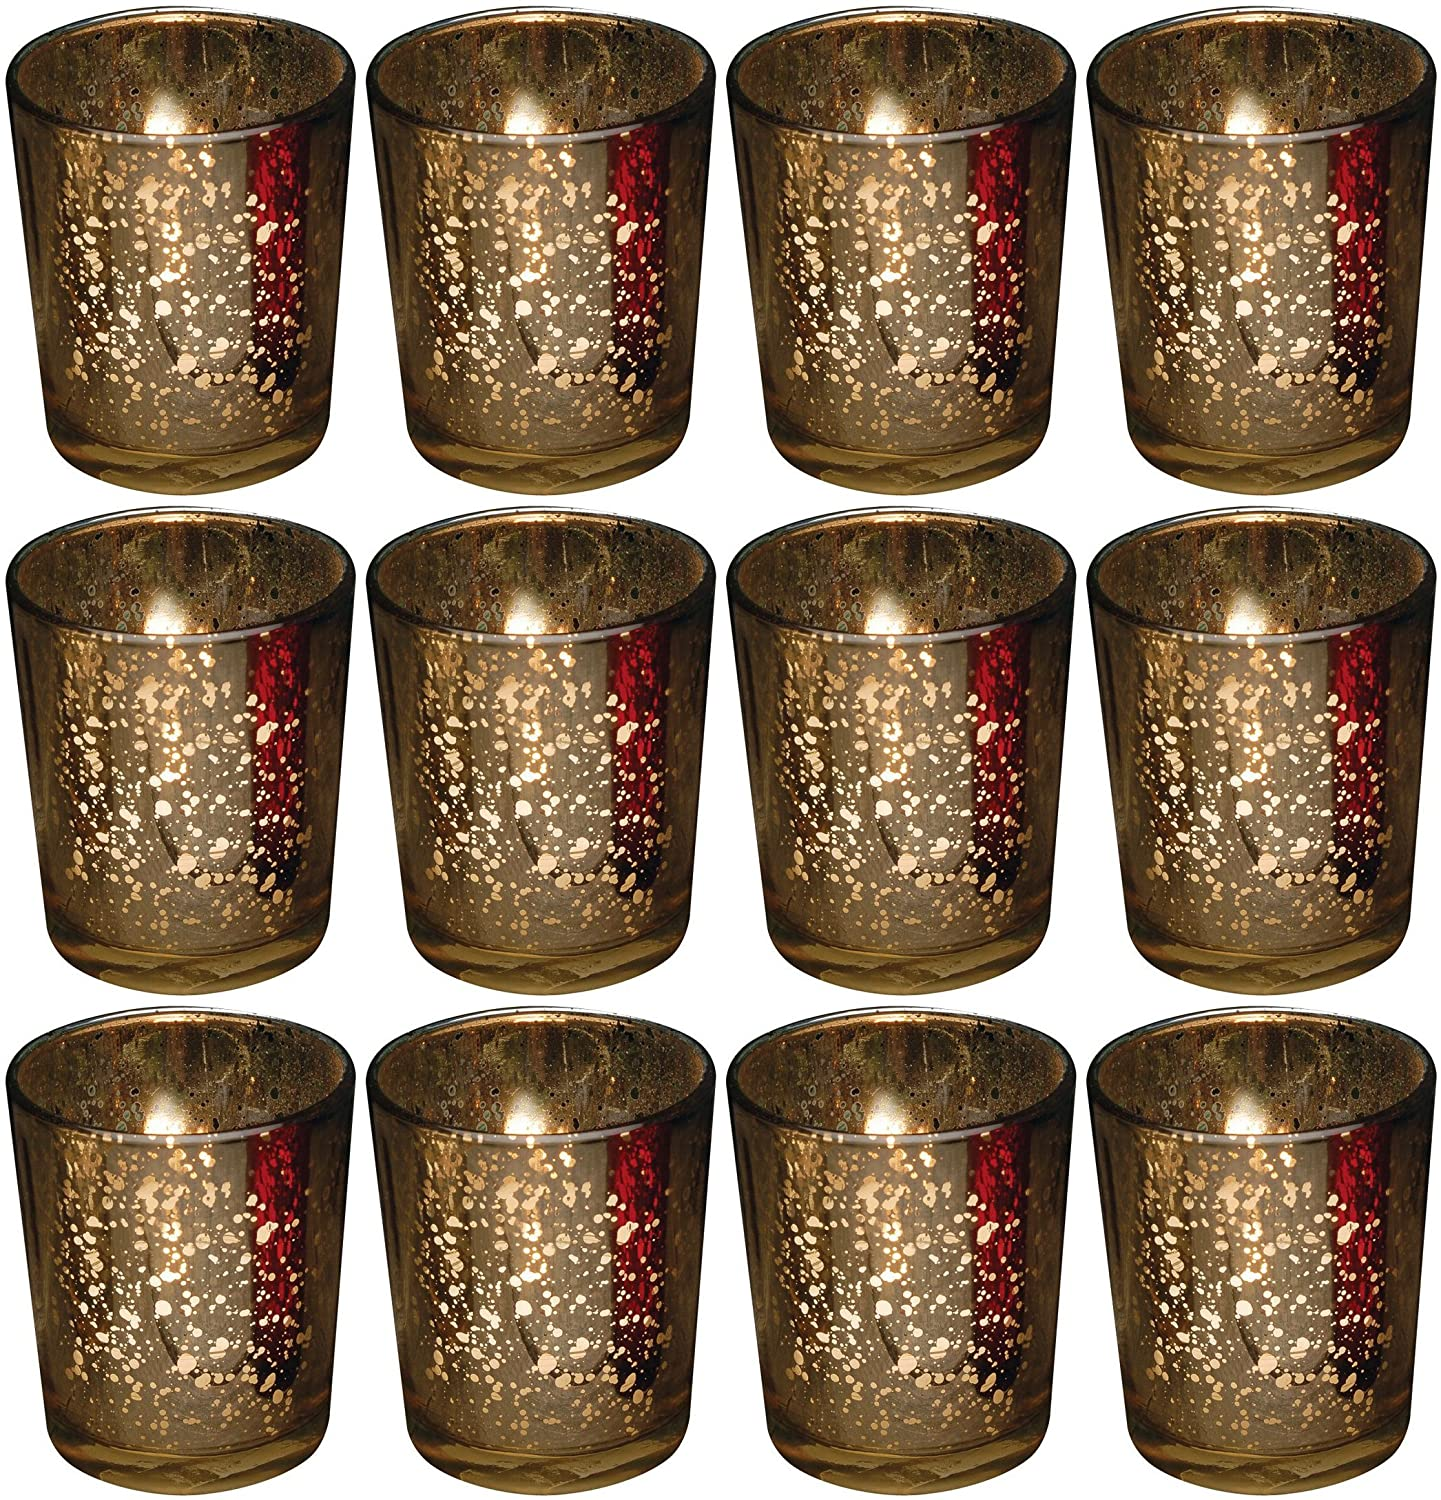 Votive Candle Holder Holds Tealight or Votive Candles Brown Rustic Glass New